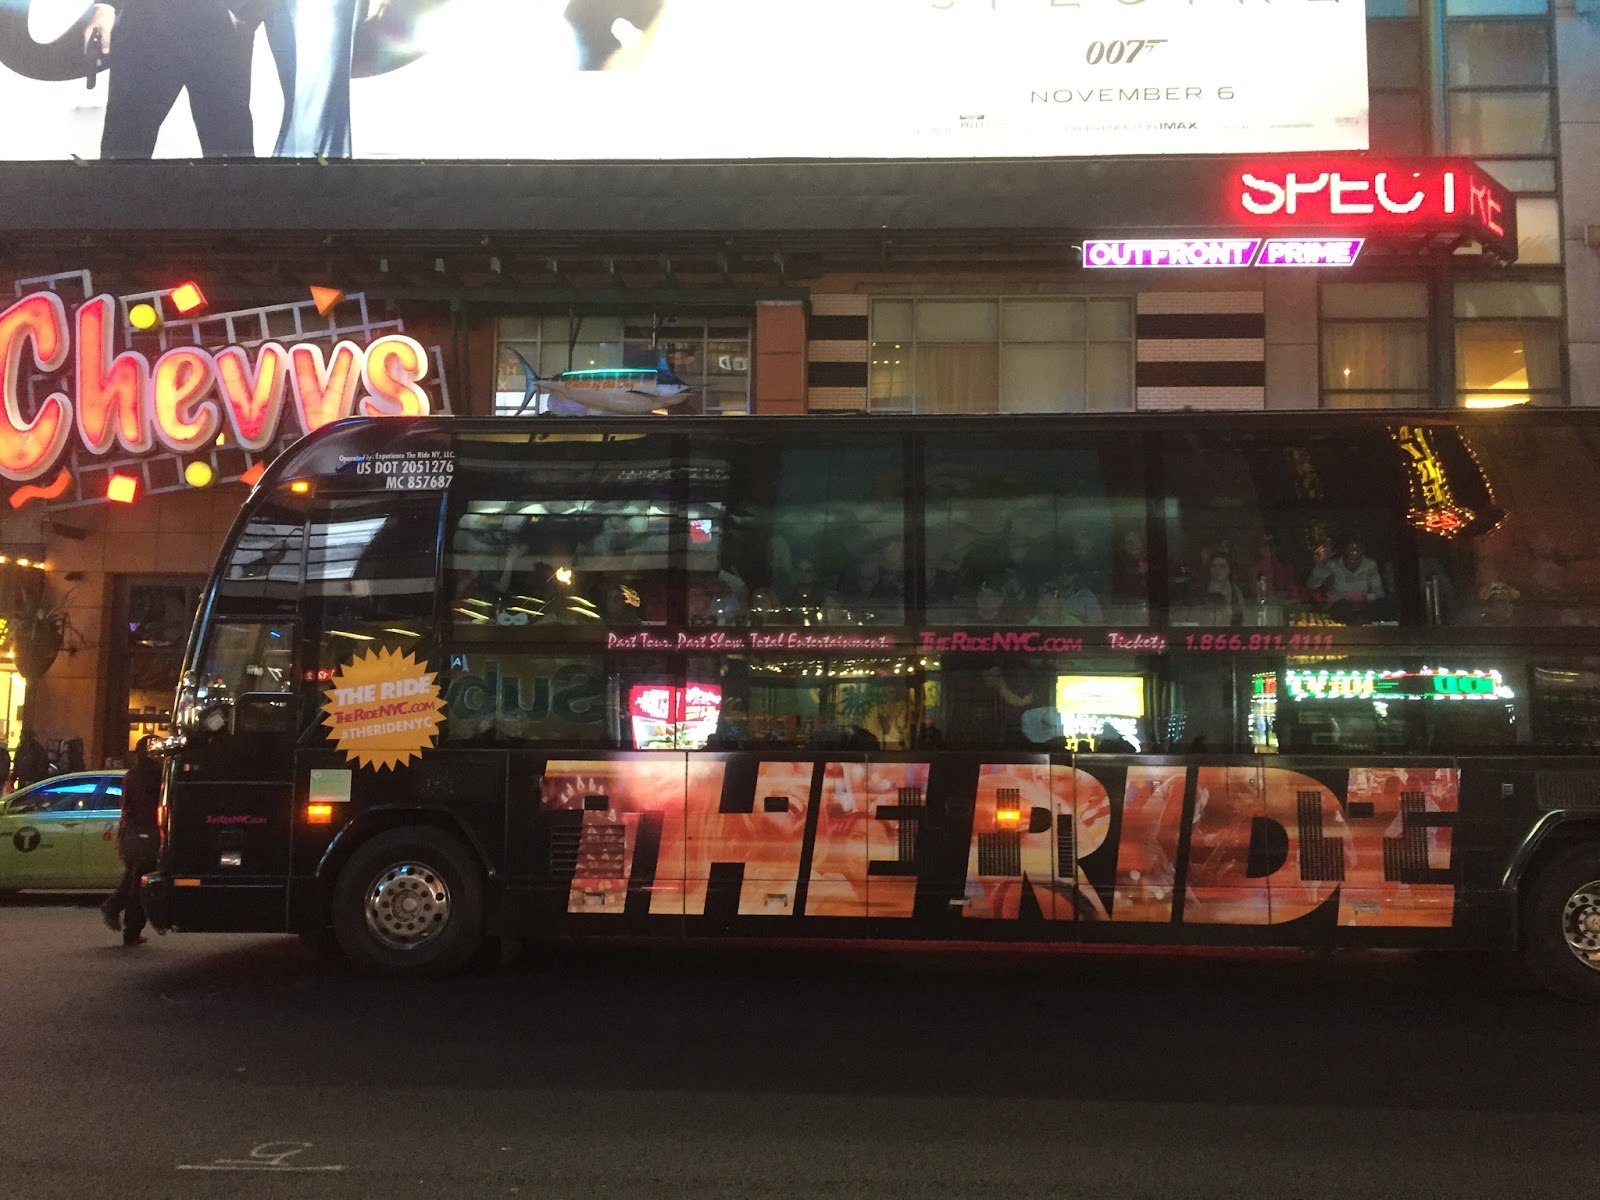 THE RIDE NYC (ザ・ライド) | ニューヨーク | アメリカ - KoM note blog